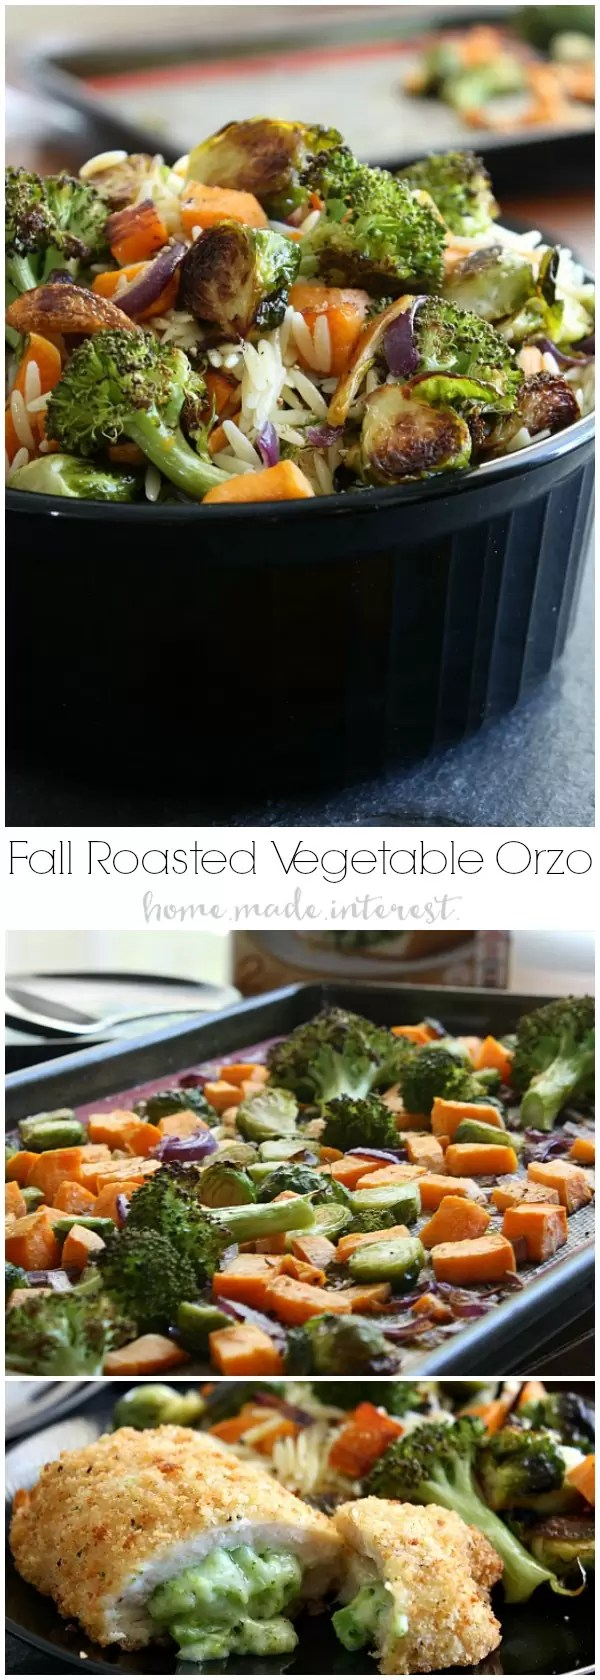 This Roasted Fall Vegetable Orzo is an easy pasta recipe that combines delicate orzo pasta with easy roasted fall vegetables. Cook sweet potatoes, brussels sprouts, and broccoli on a baking sheet in the oven and toss them with orzo for an easy fall recipe that will feed the whole family.